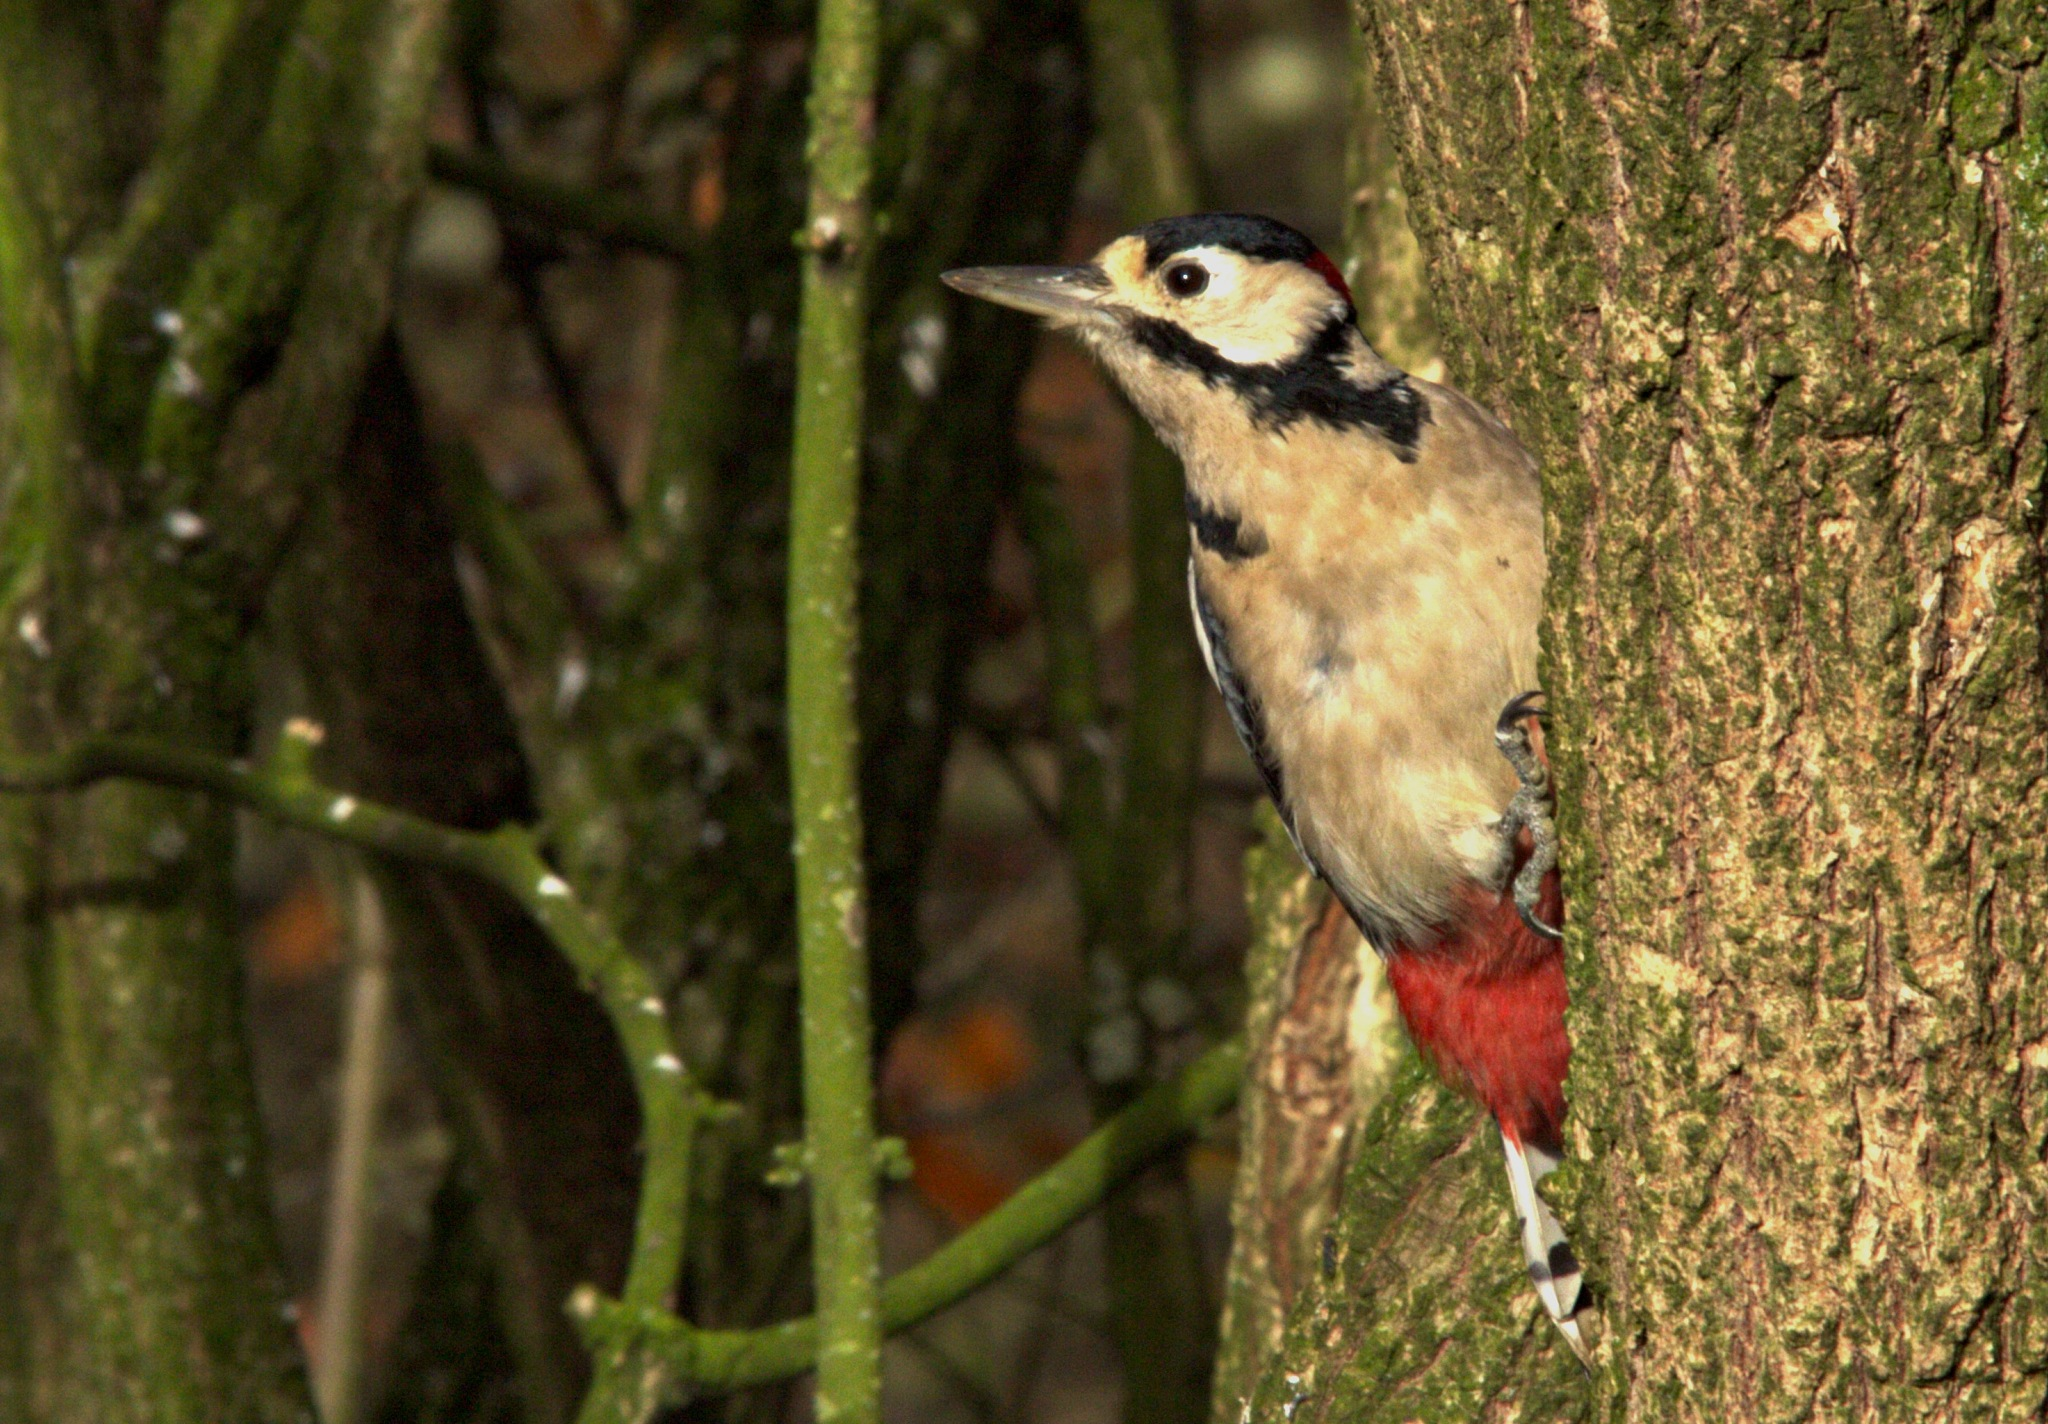 Greater Spotted Woodpecker by Rich66